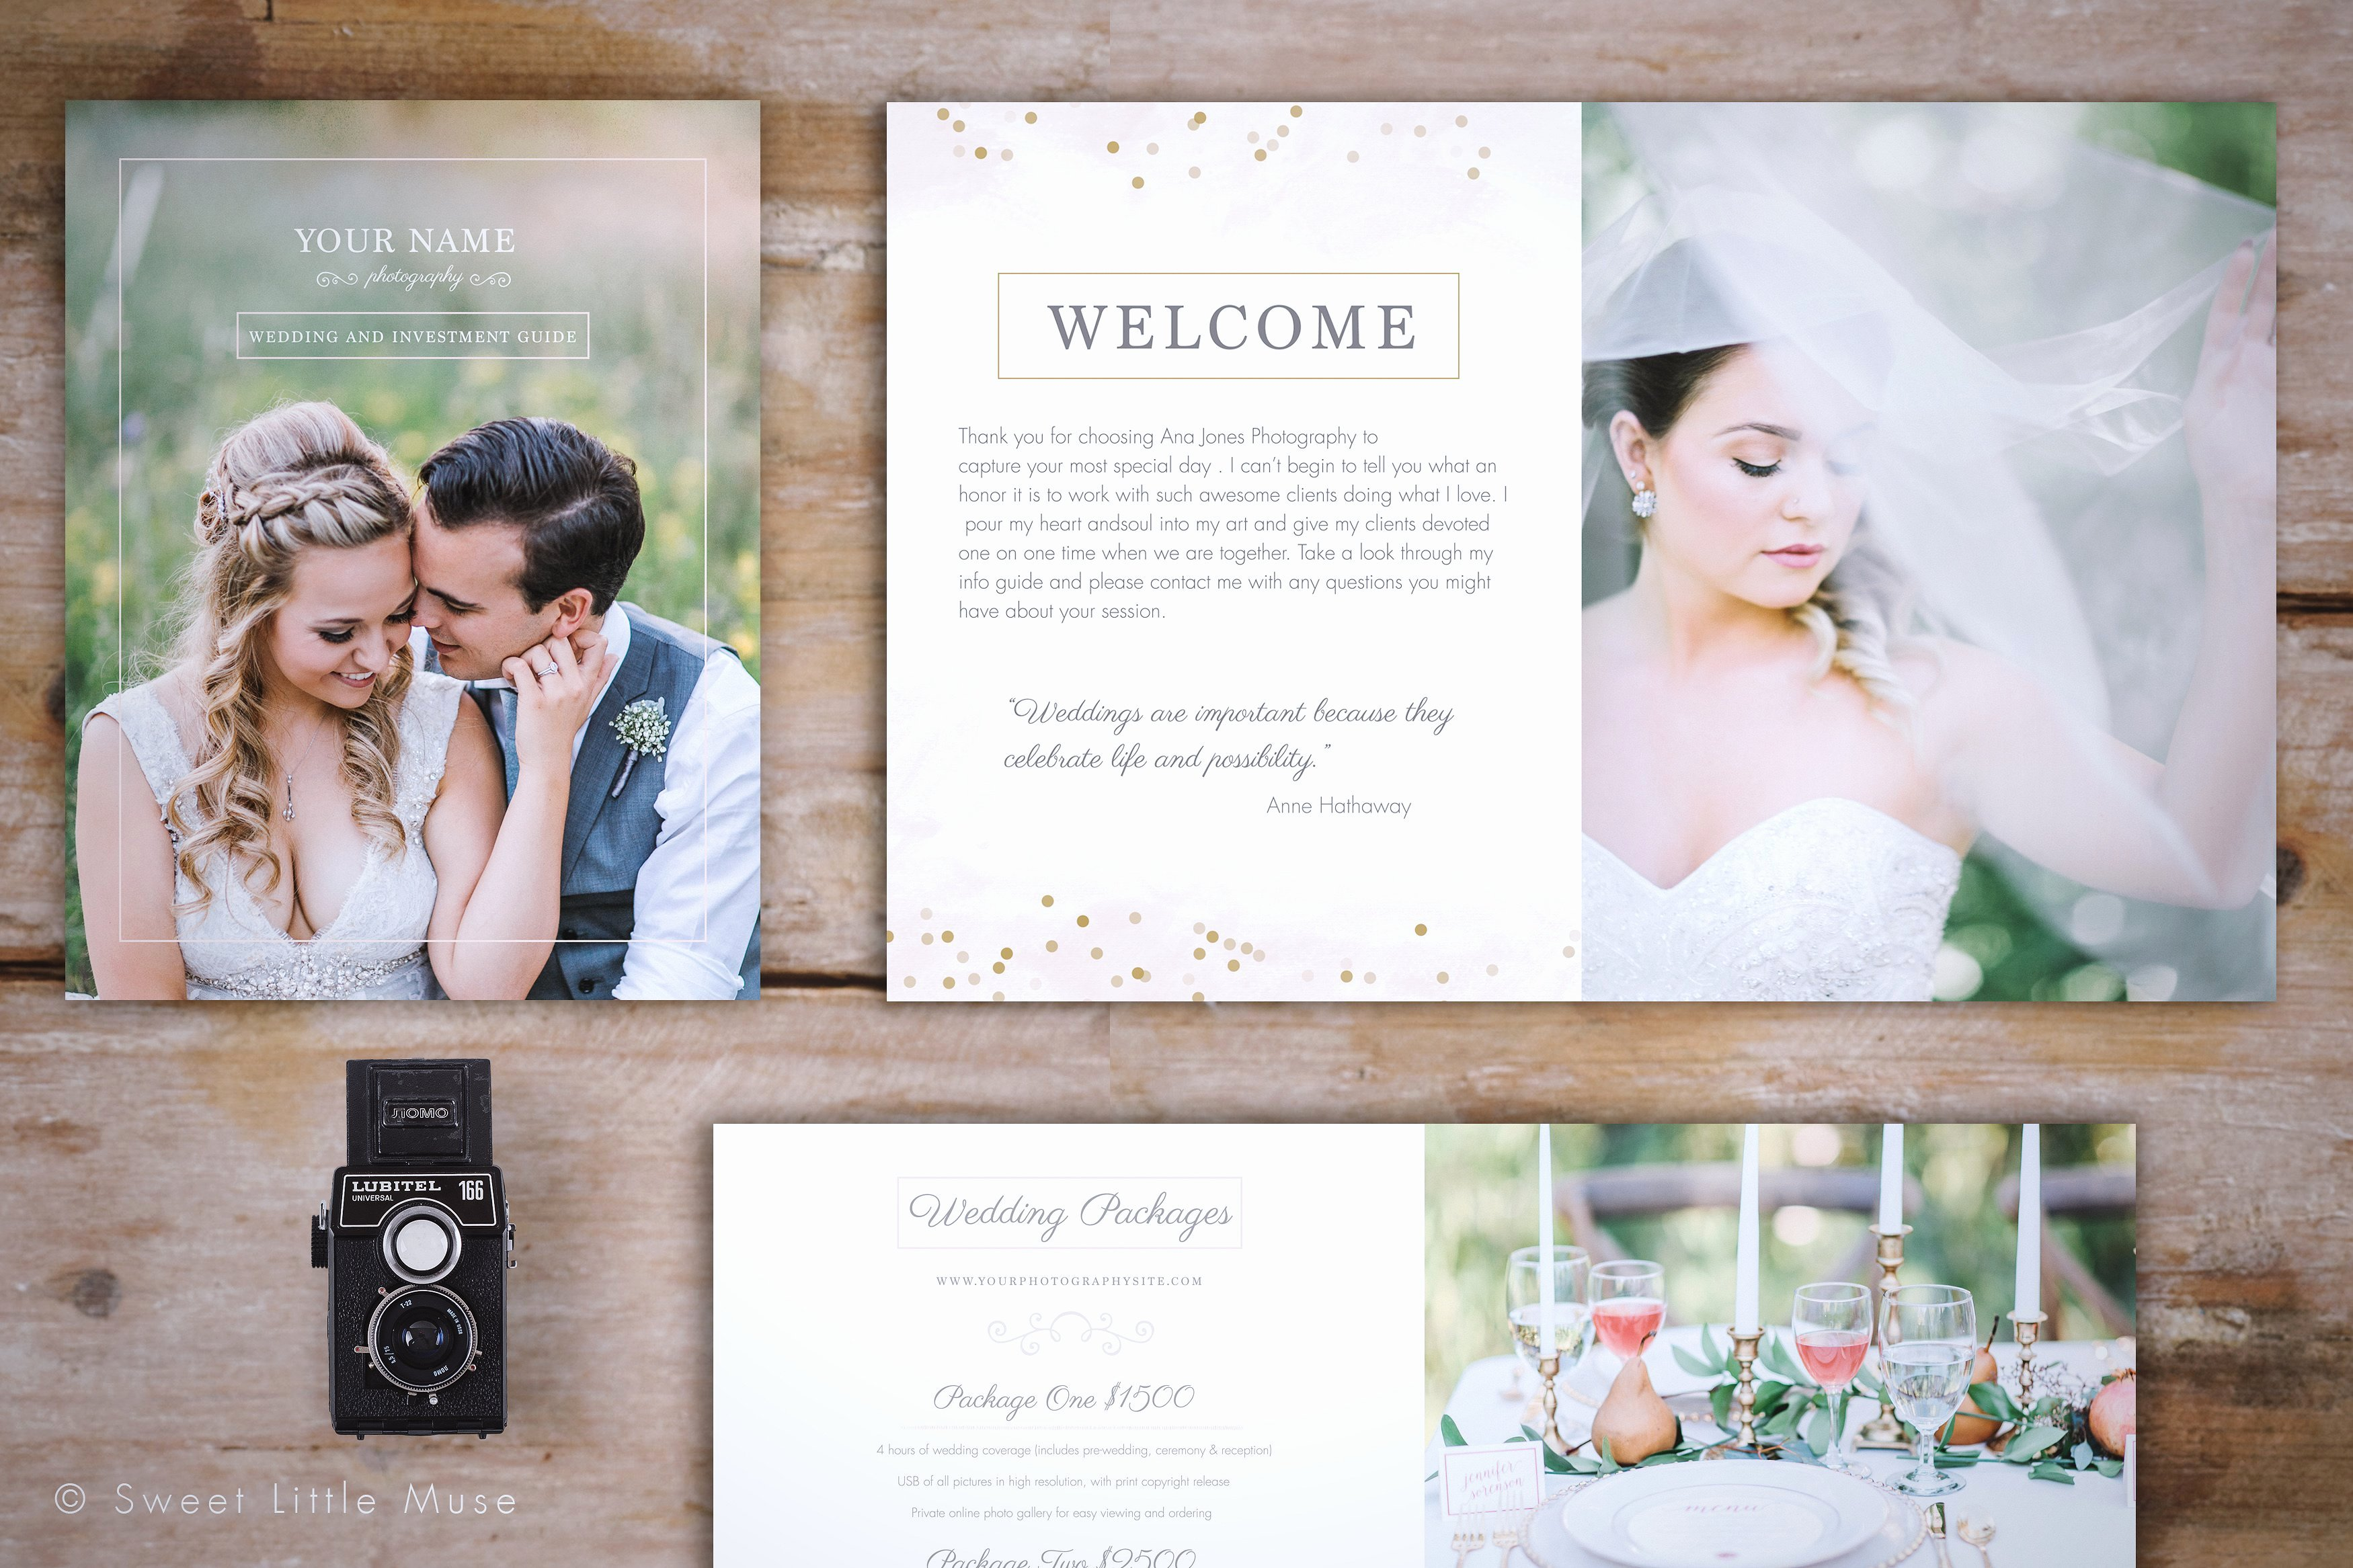 Free Photography Marketing Templates Luxury 21 Graphy Magazine Templates to Promote Your Business Filtergrade